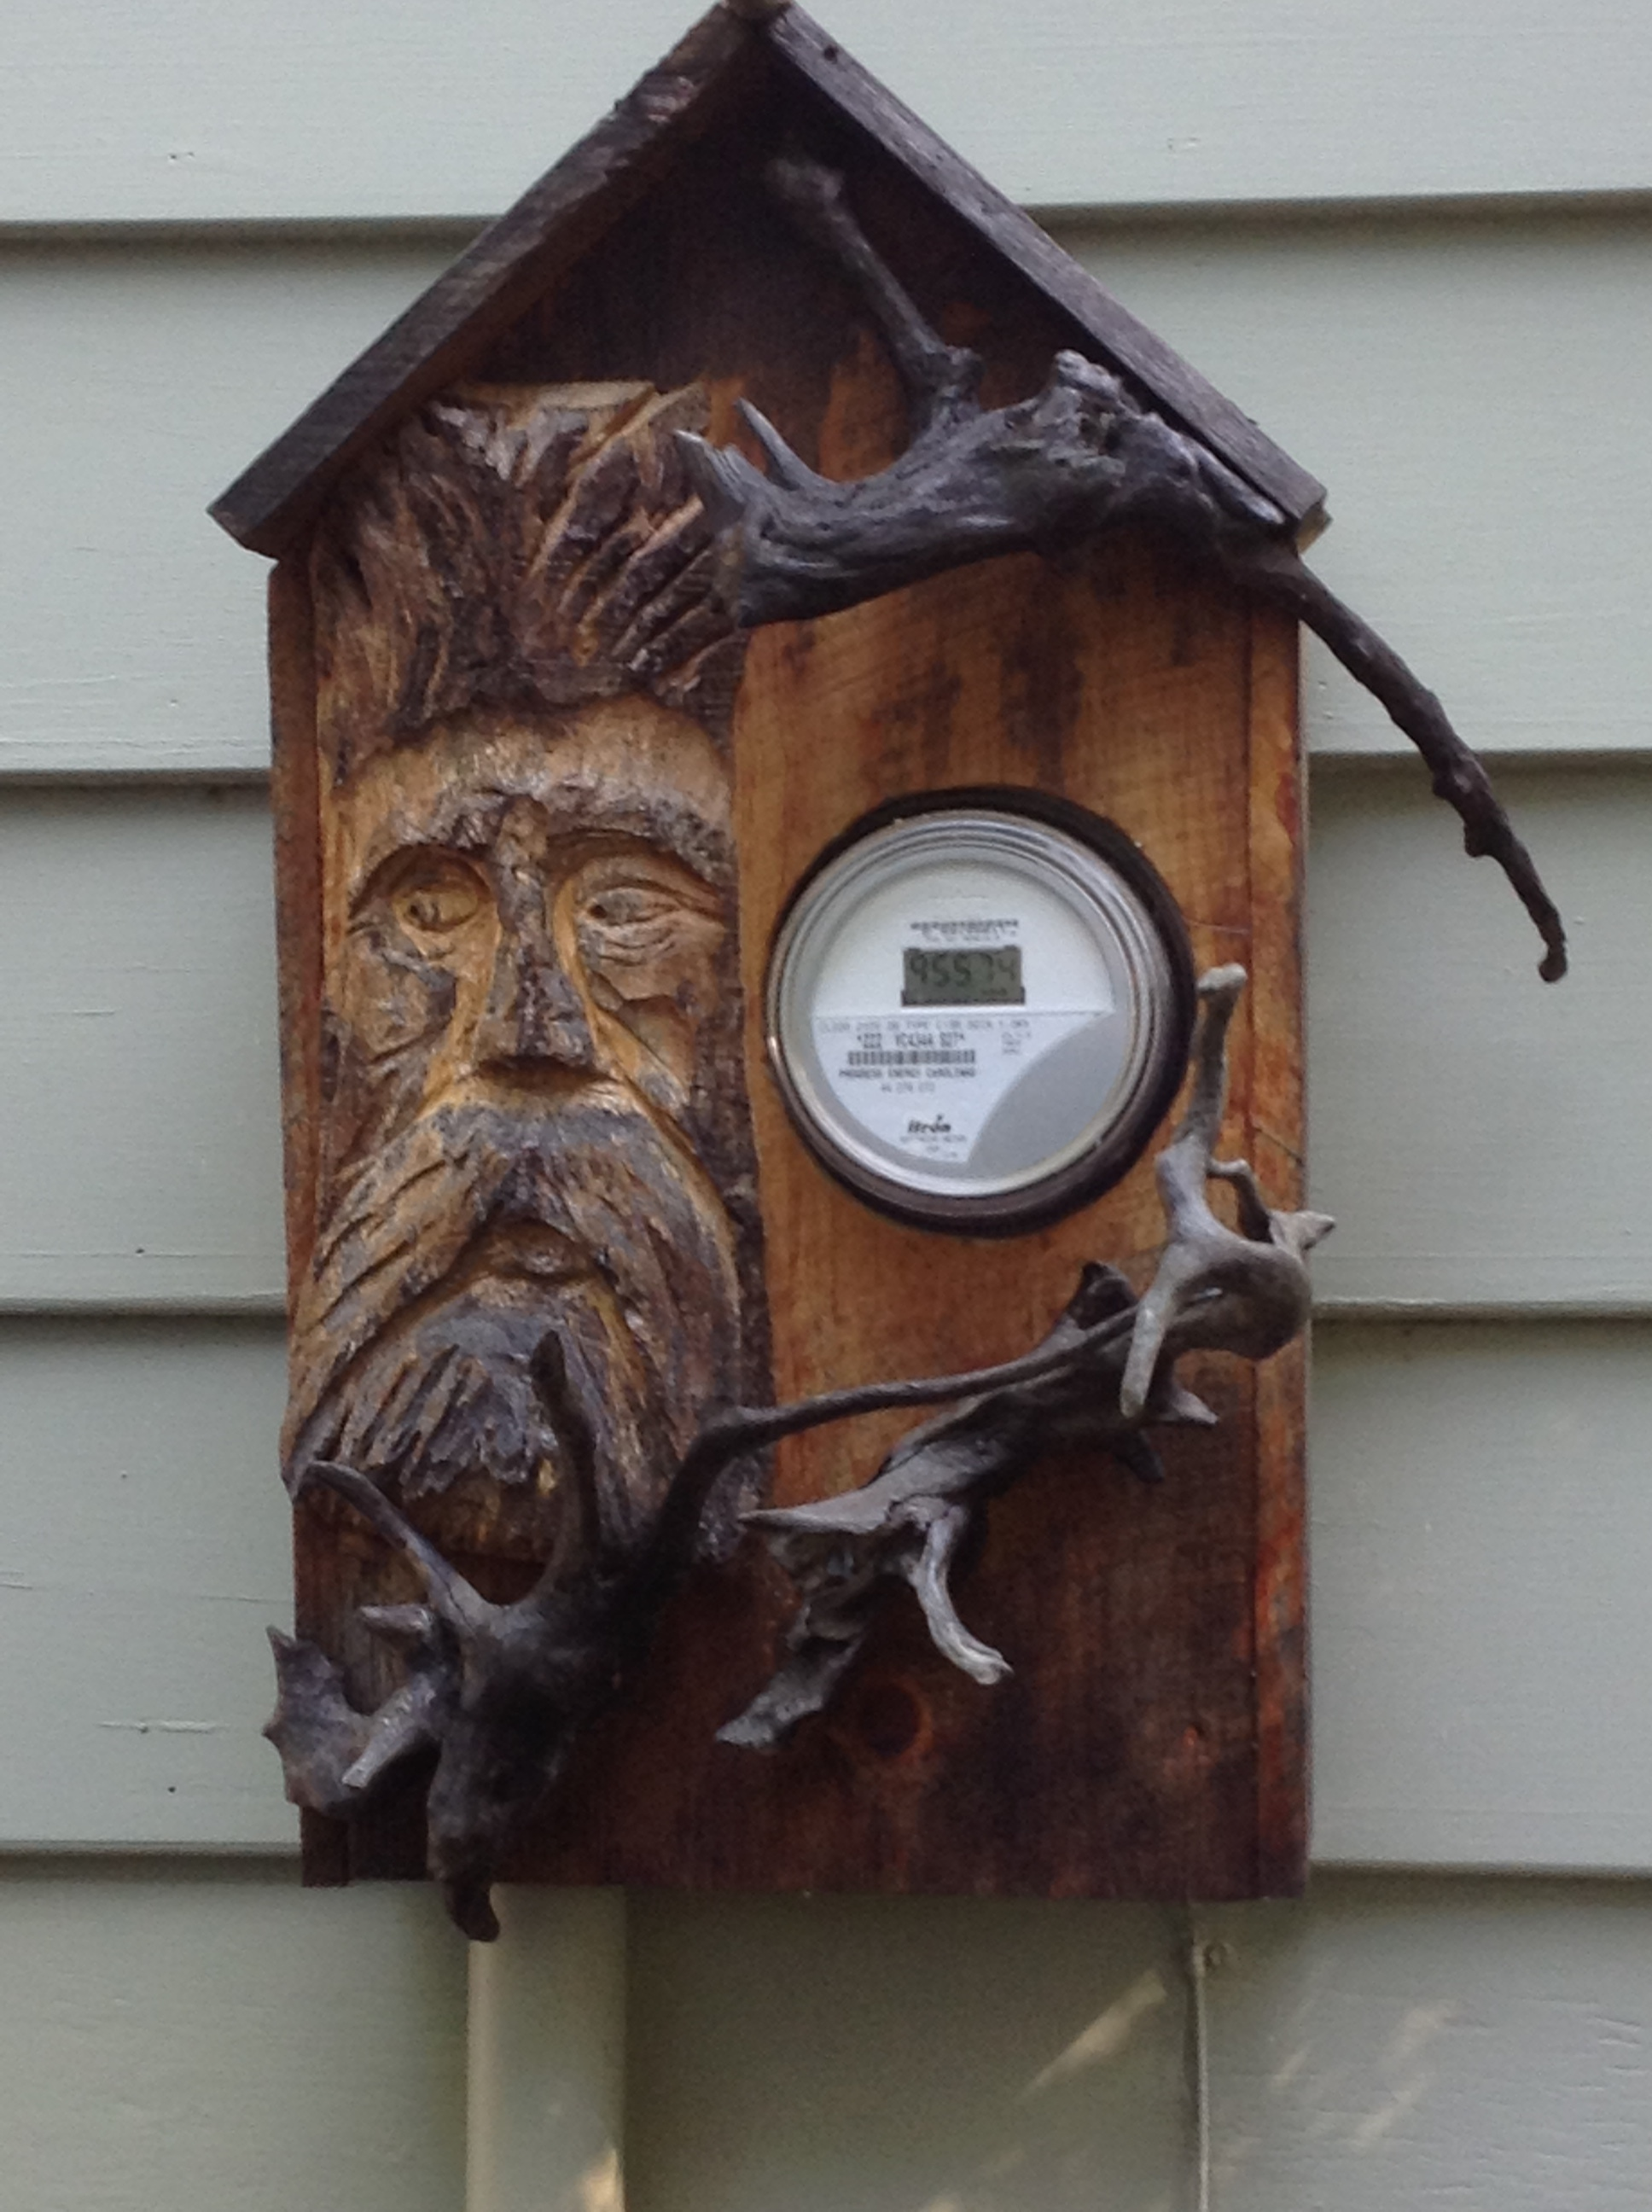 A clever and adorable disguise for the electric meter.